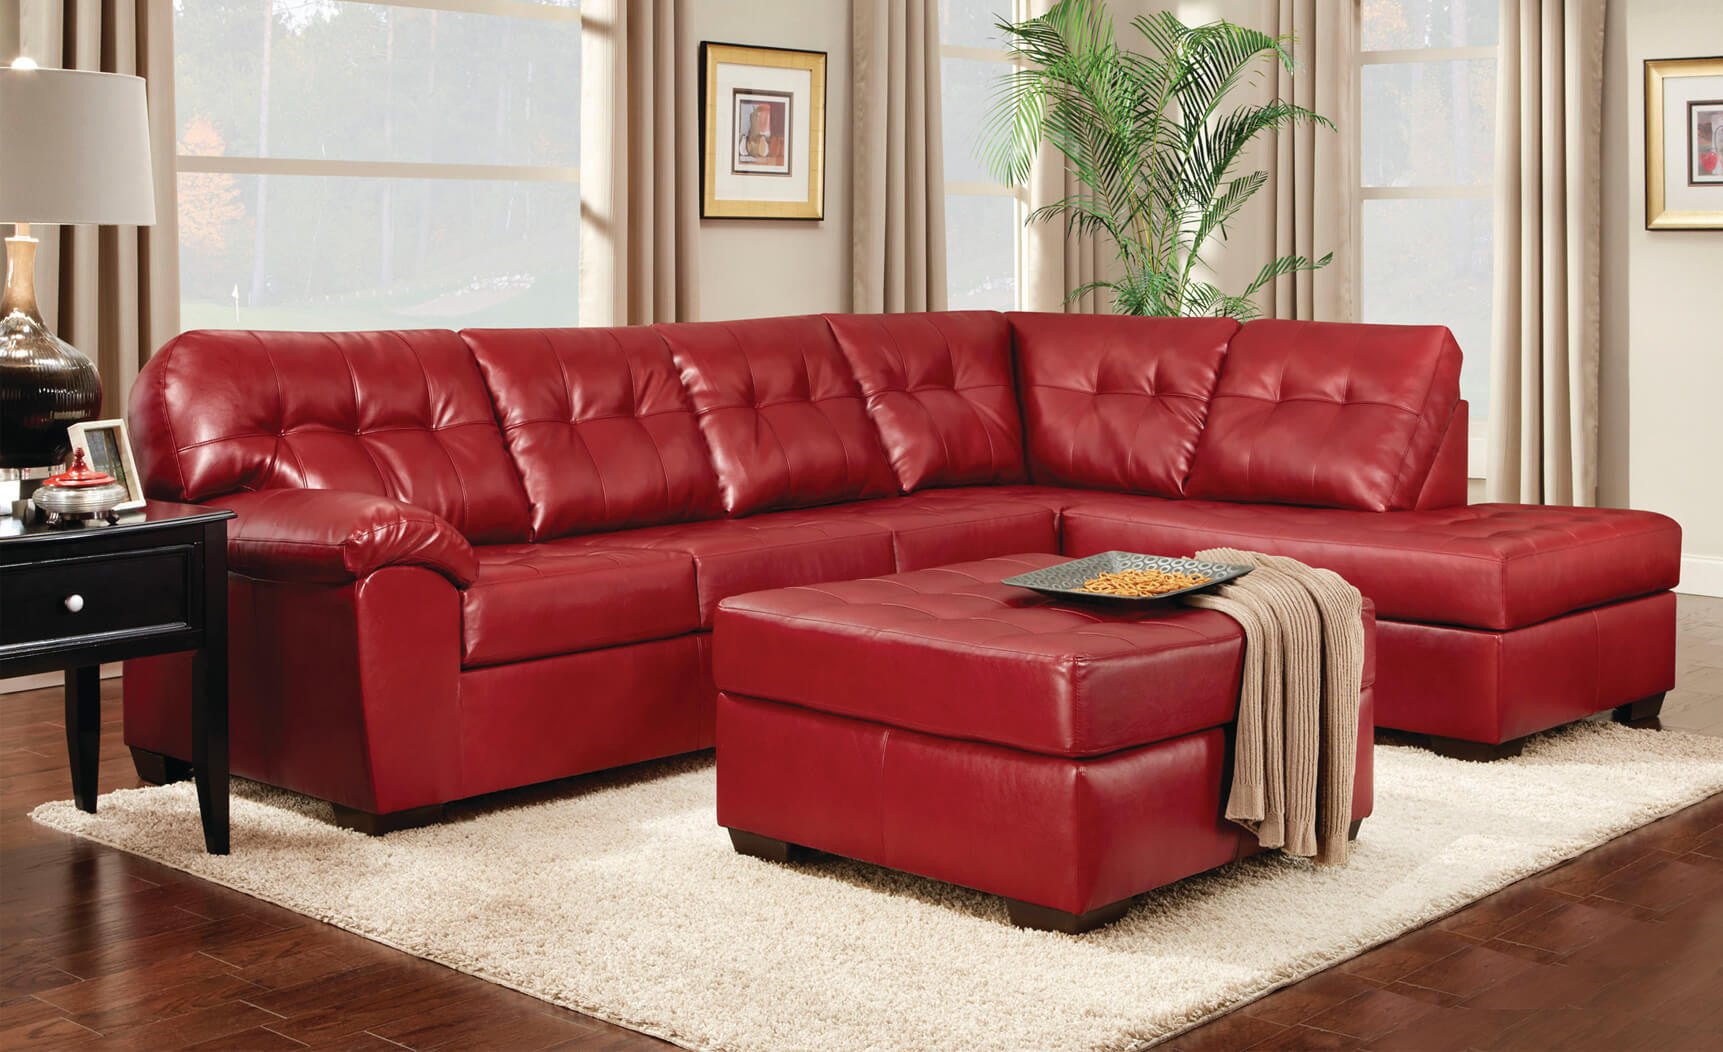 Wondrous Rosanna Sectional By Hd Furniture Cjindustries Chair Design For Home Cjindustriesco